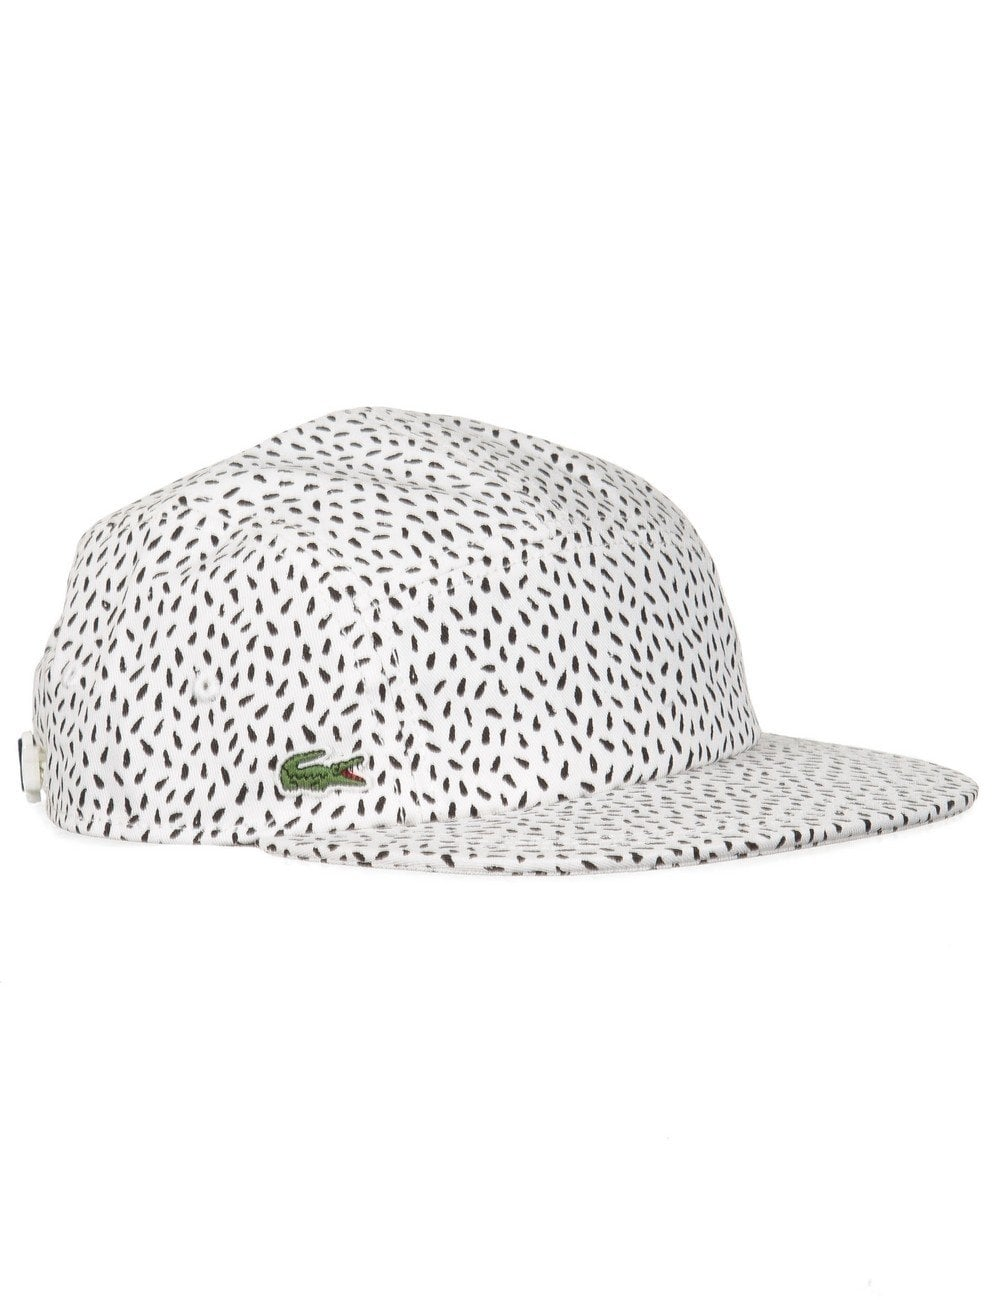 Lacoste Live 5 Panel Hat - Flour Black - Accessories from Fat Buddha ... c636af3ea0d